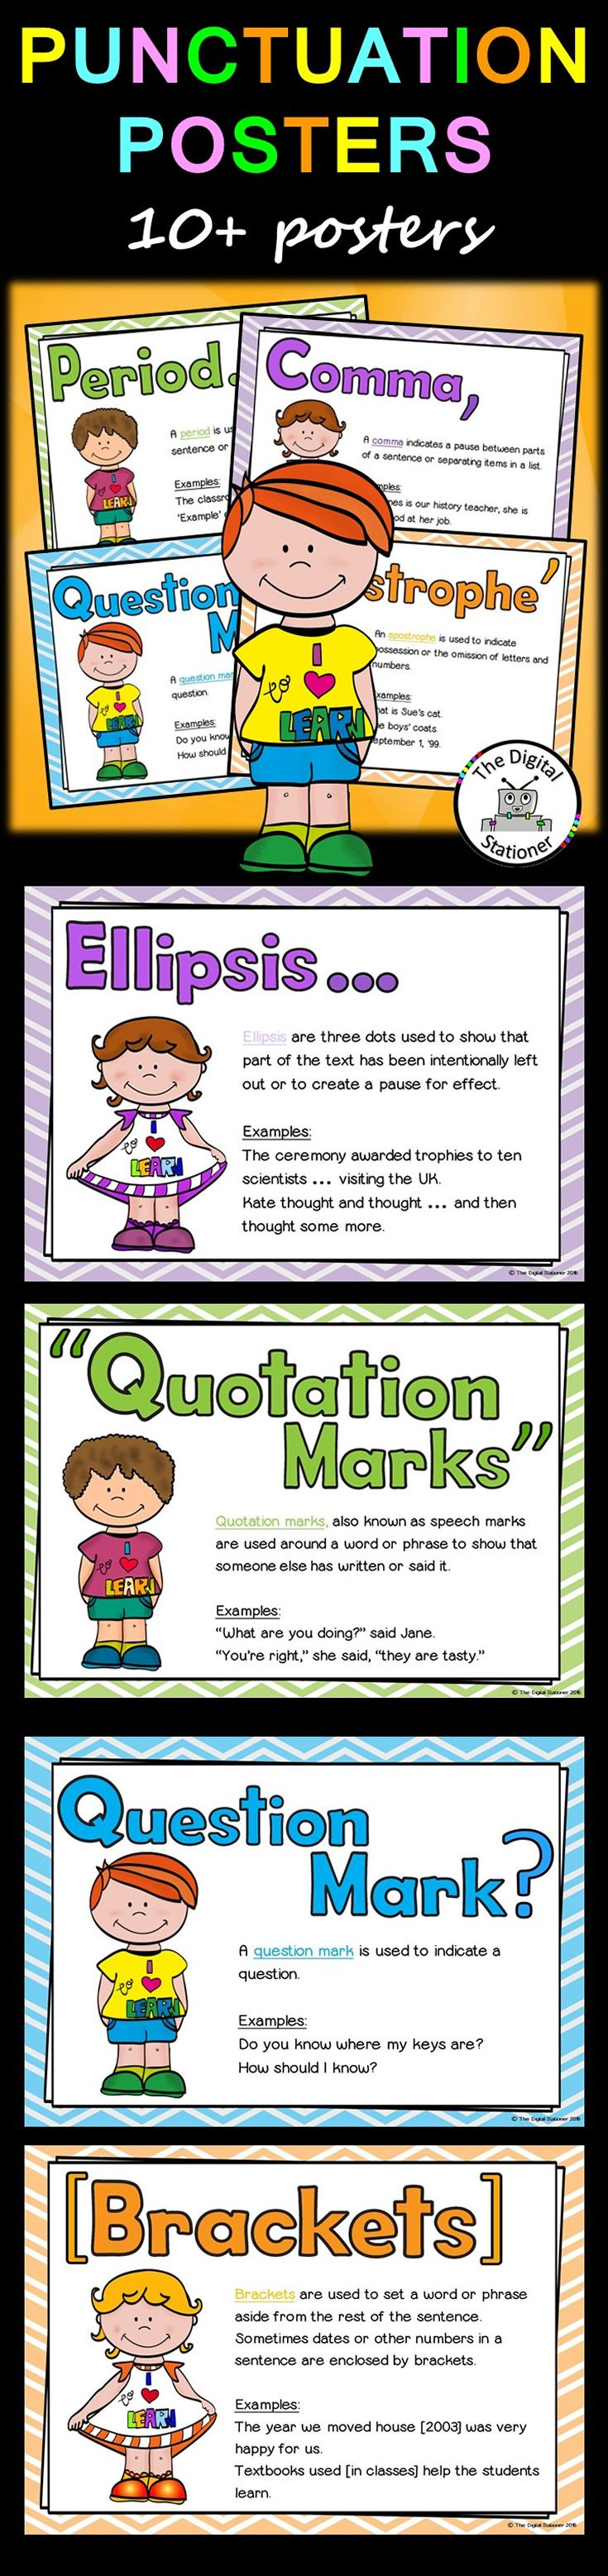 $1.50 - Punctuation posters / displays / printables. Literacy , Language Arts